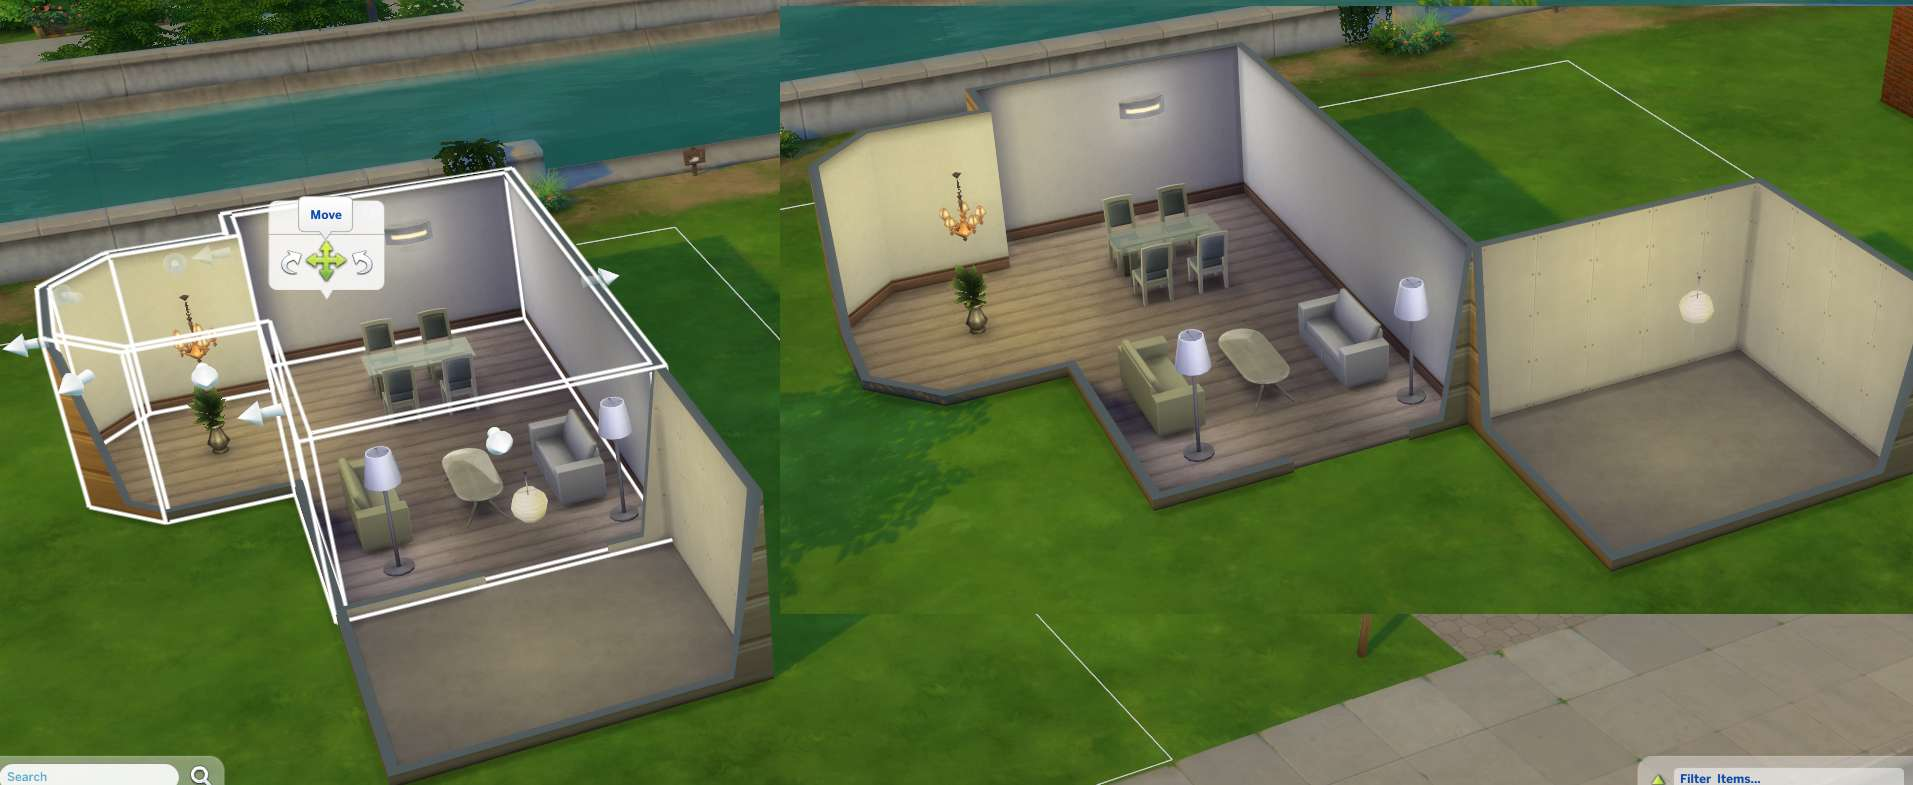 Sims 4 build mode tutorials for houses and landscaping for How to start building a house